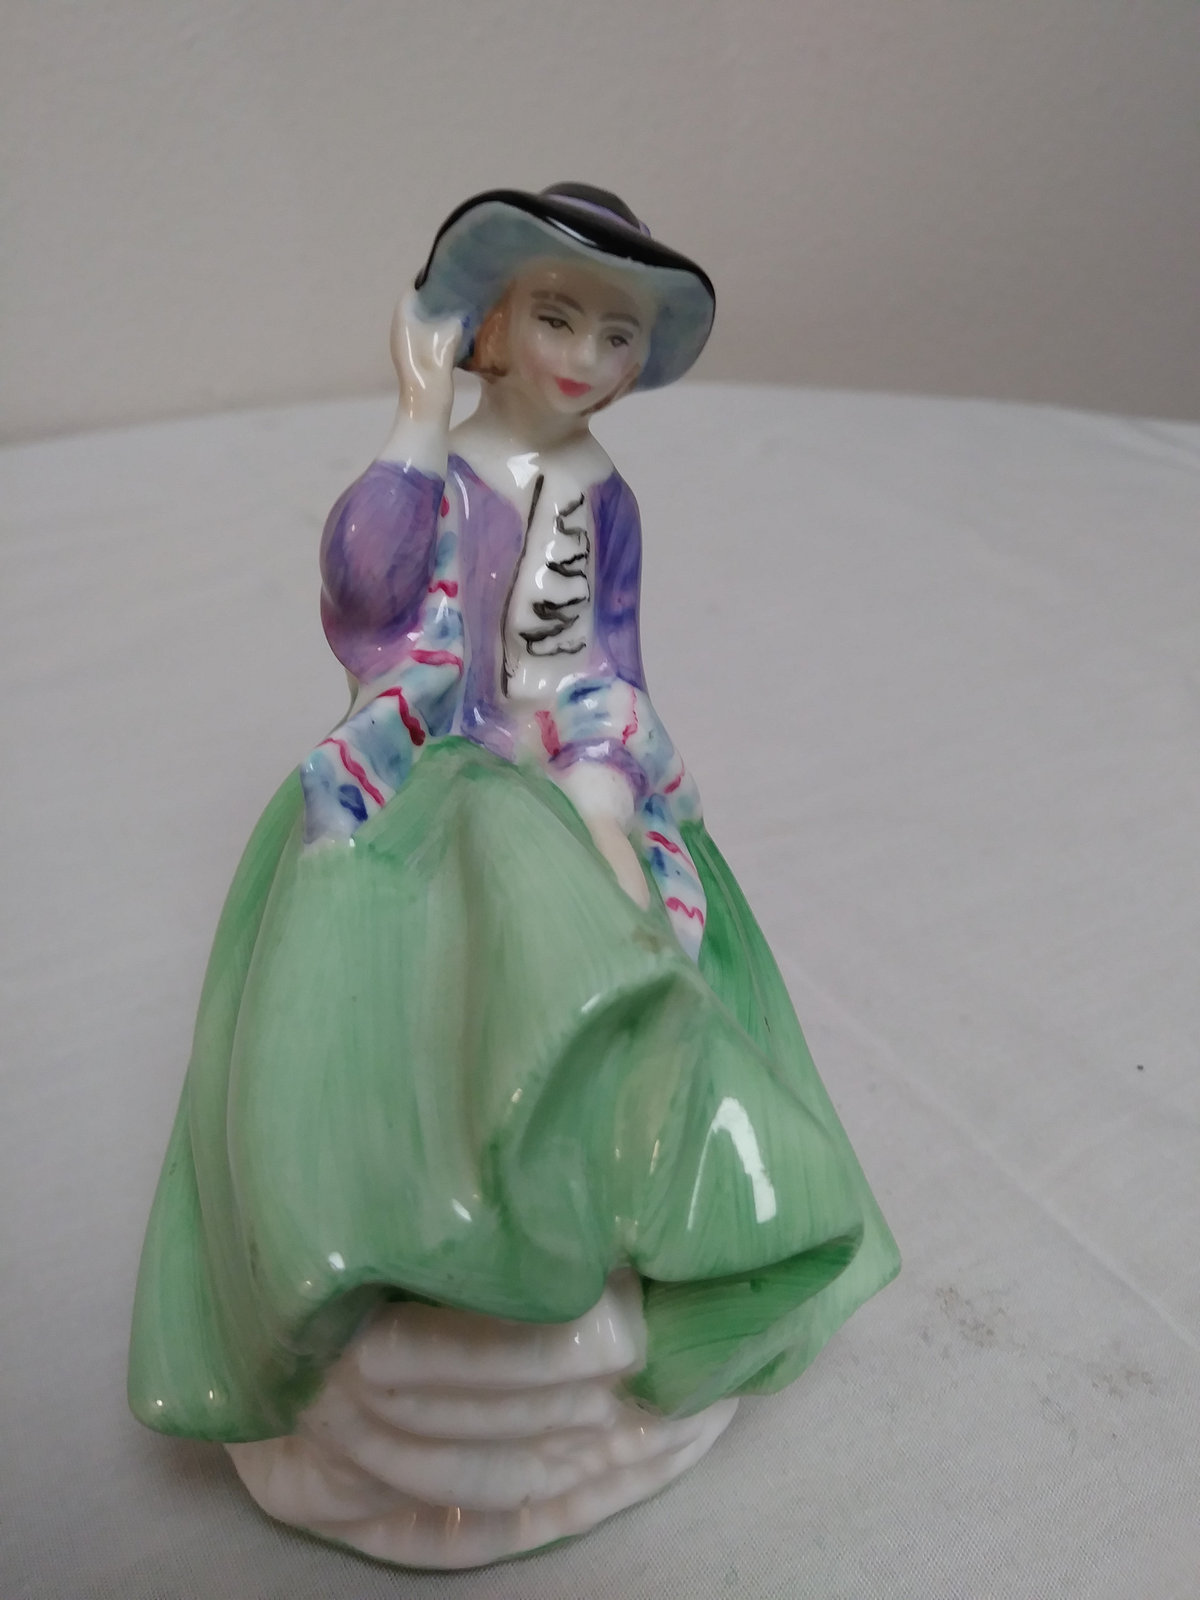 Royal Douton Top O' of Hill HN 2126 1937 Figurine V.G Condition